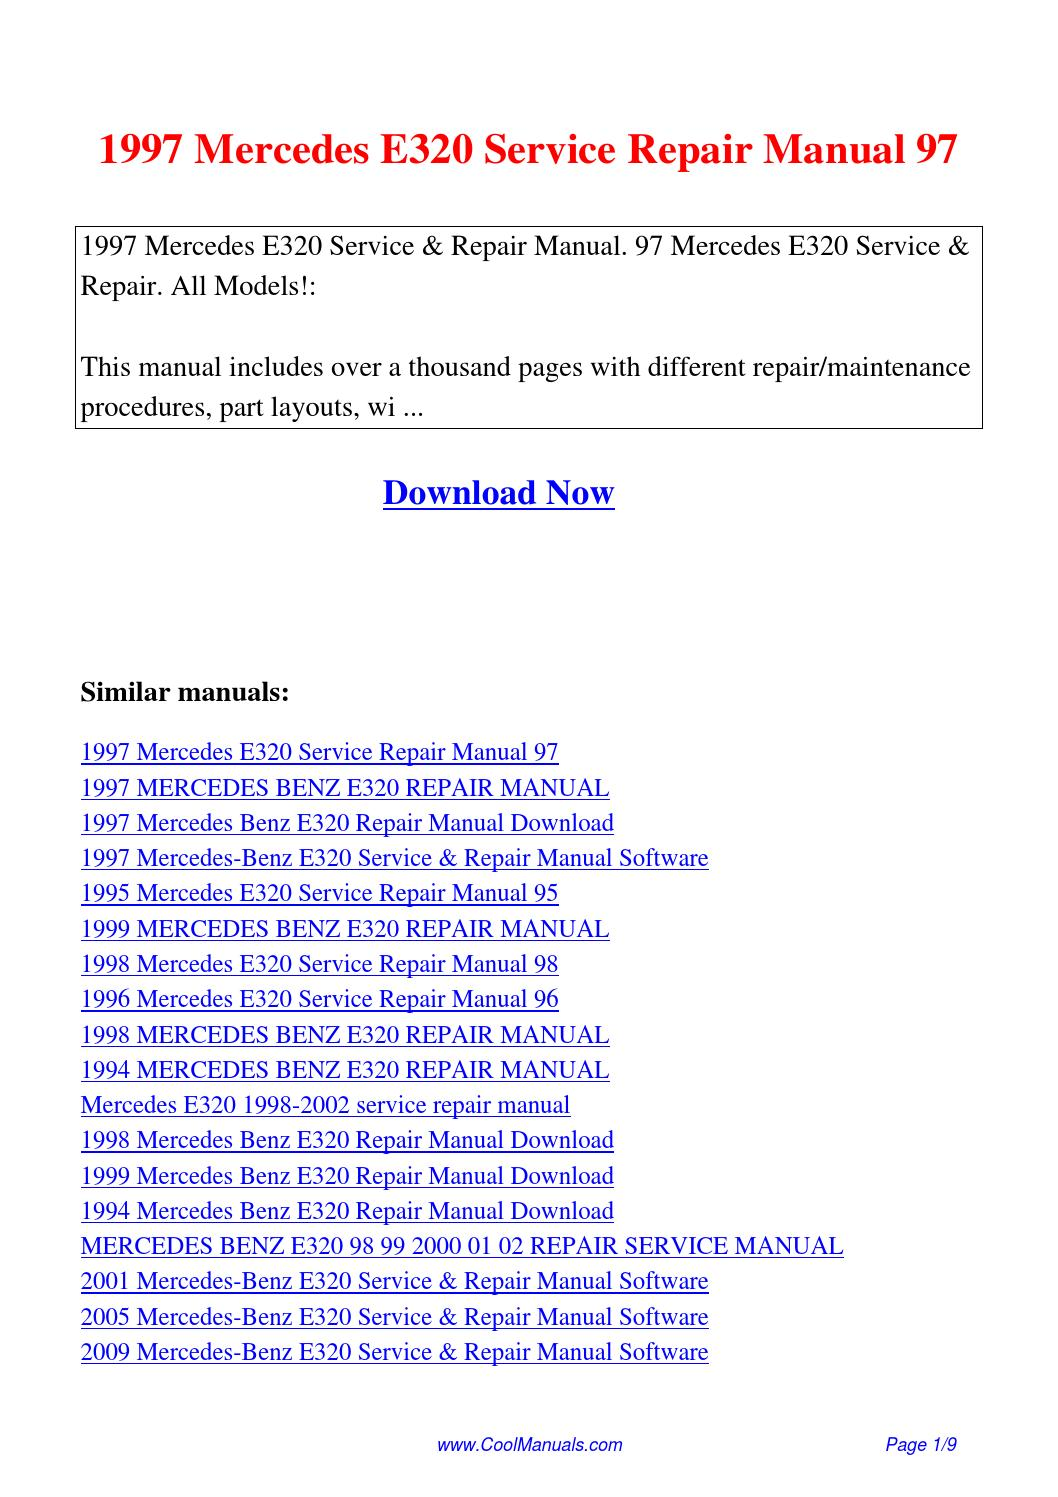 1997 mercedes e320 service repair manual by linda for Mercedes benz e320 service manual